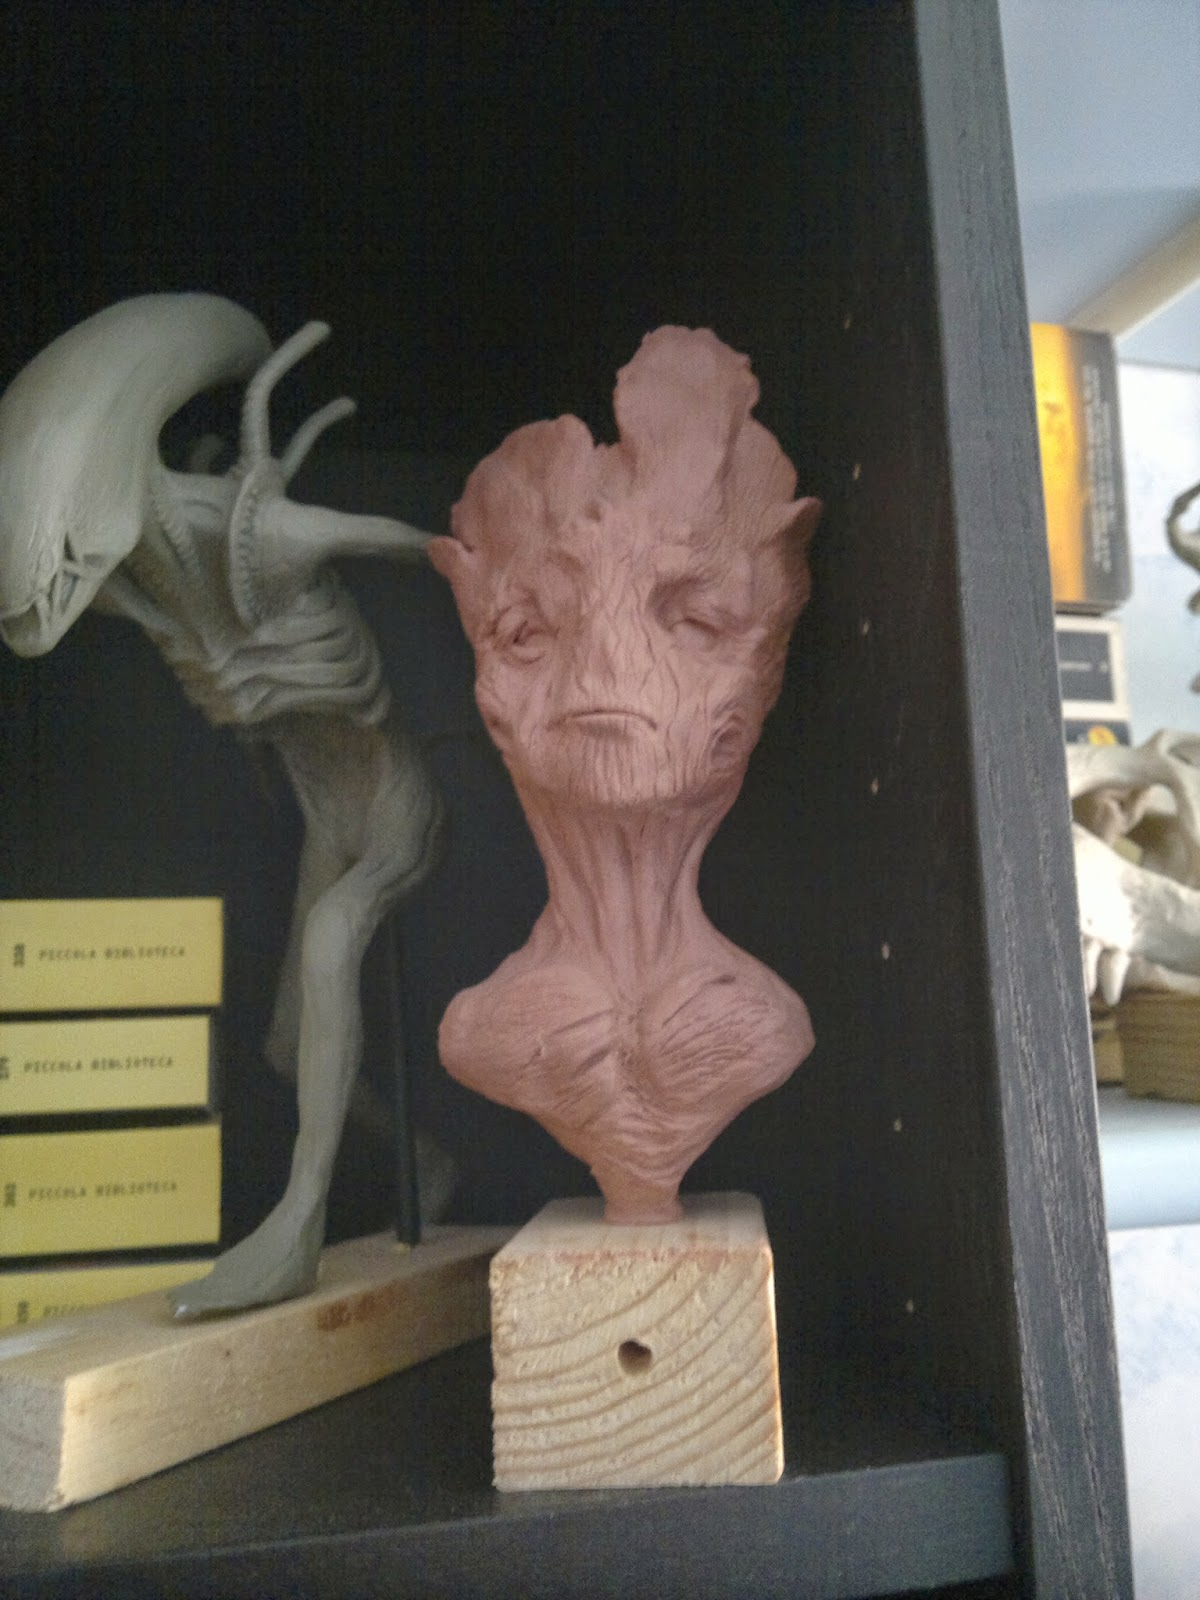 Young groot like bust